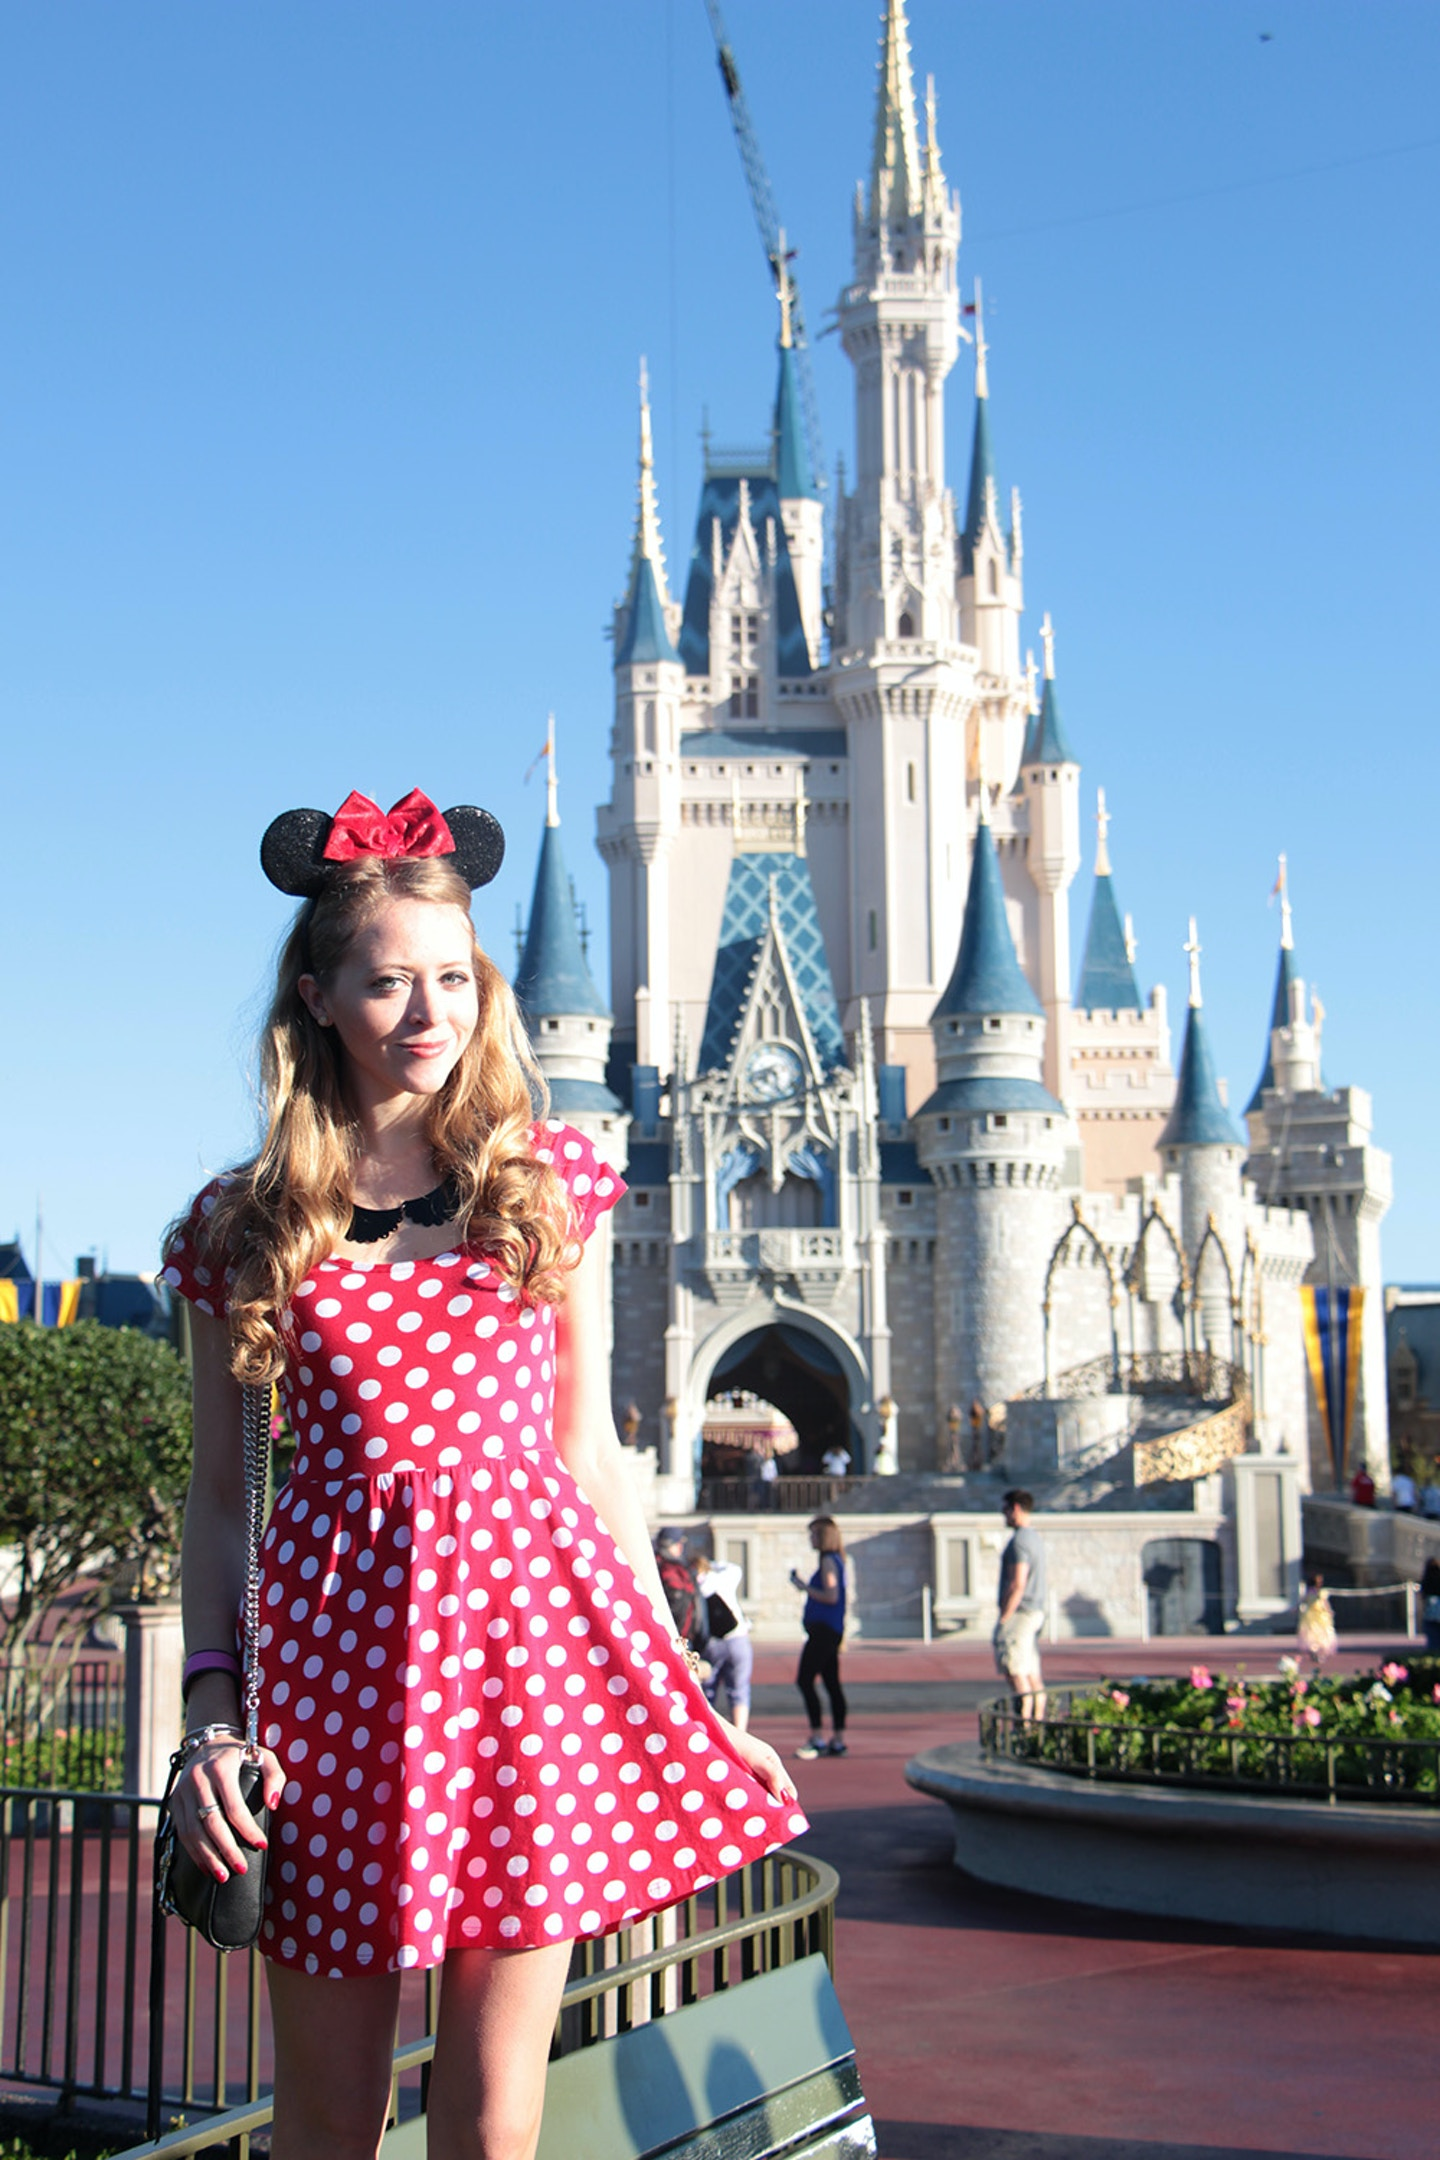 Minnie Mouse visits Magic Kingdom